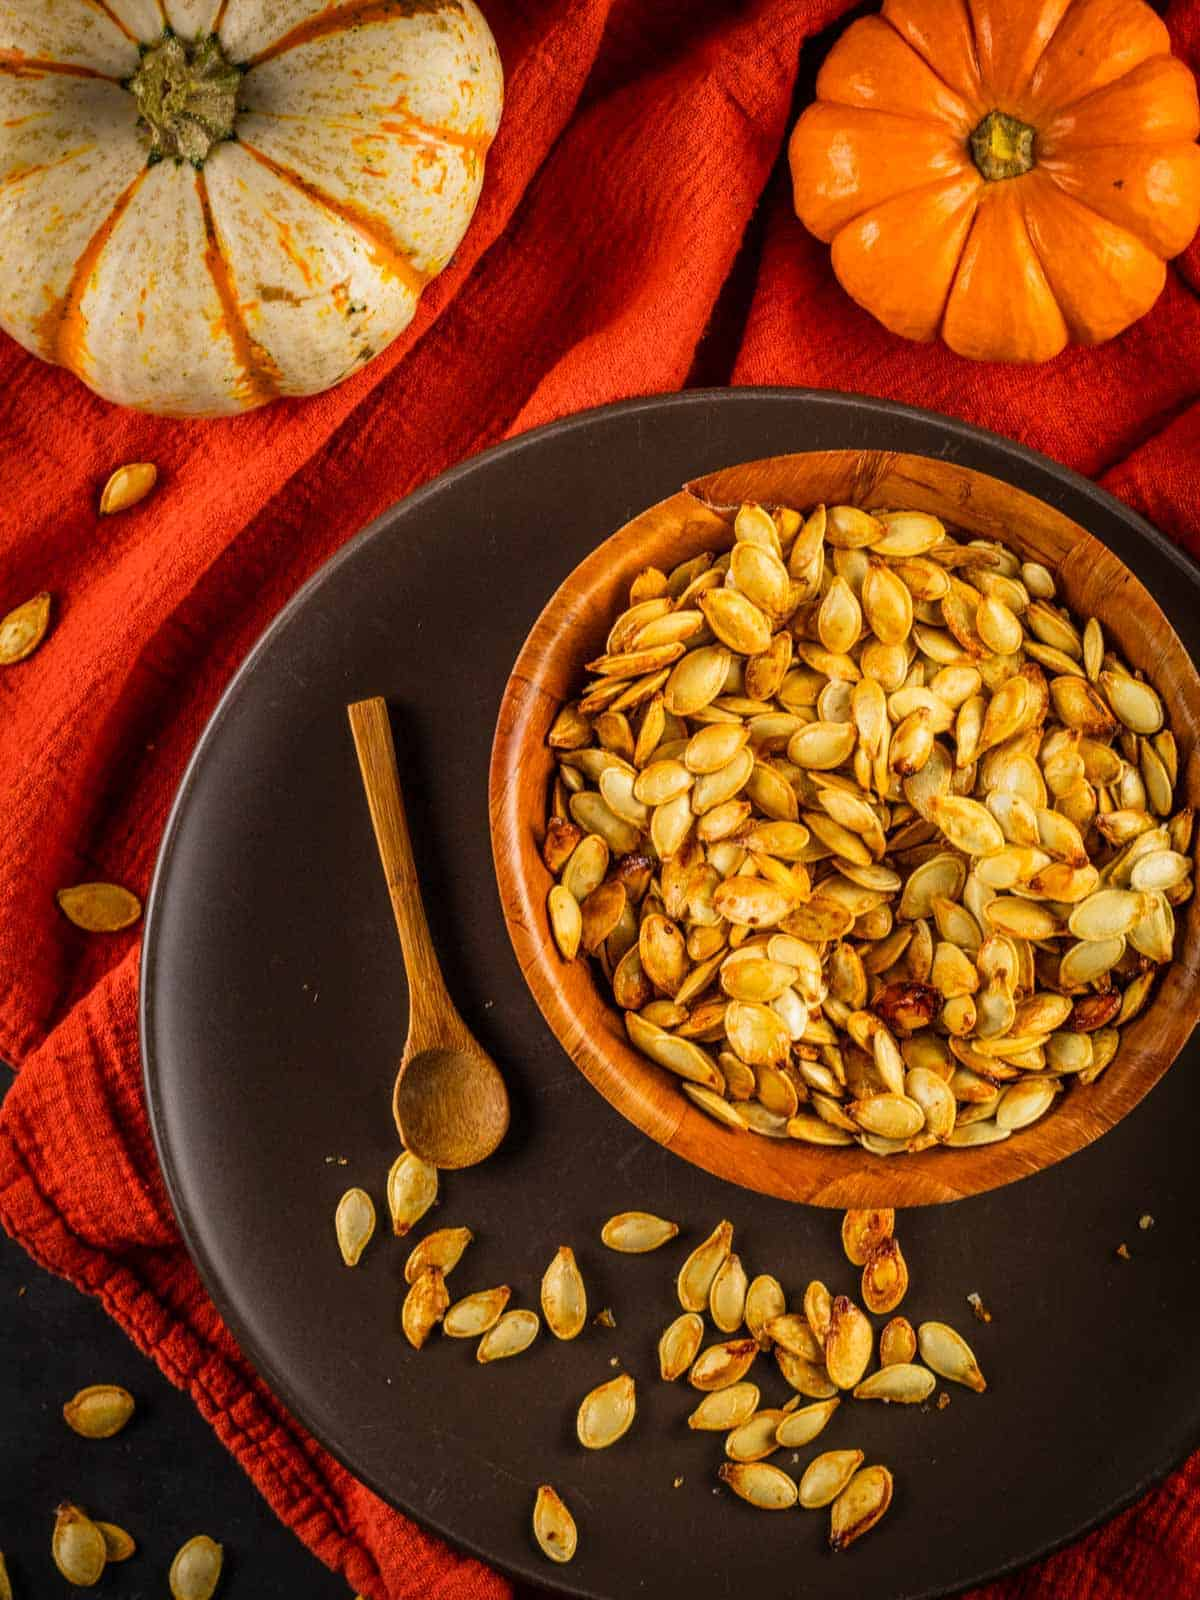 pumpkin seeds in a wooden bowl on a brown plate with a wooden spoon and pumpkins